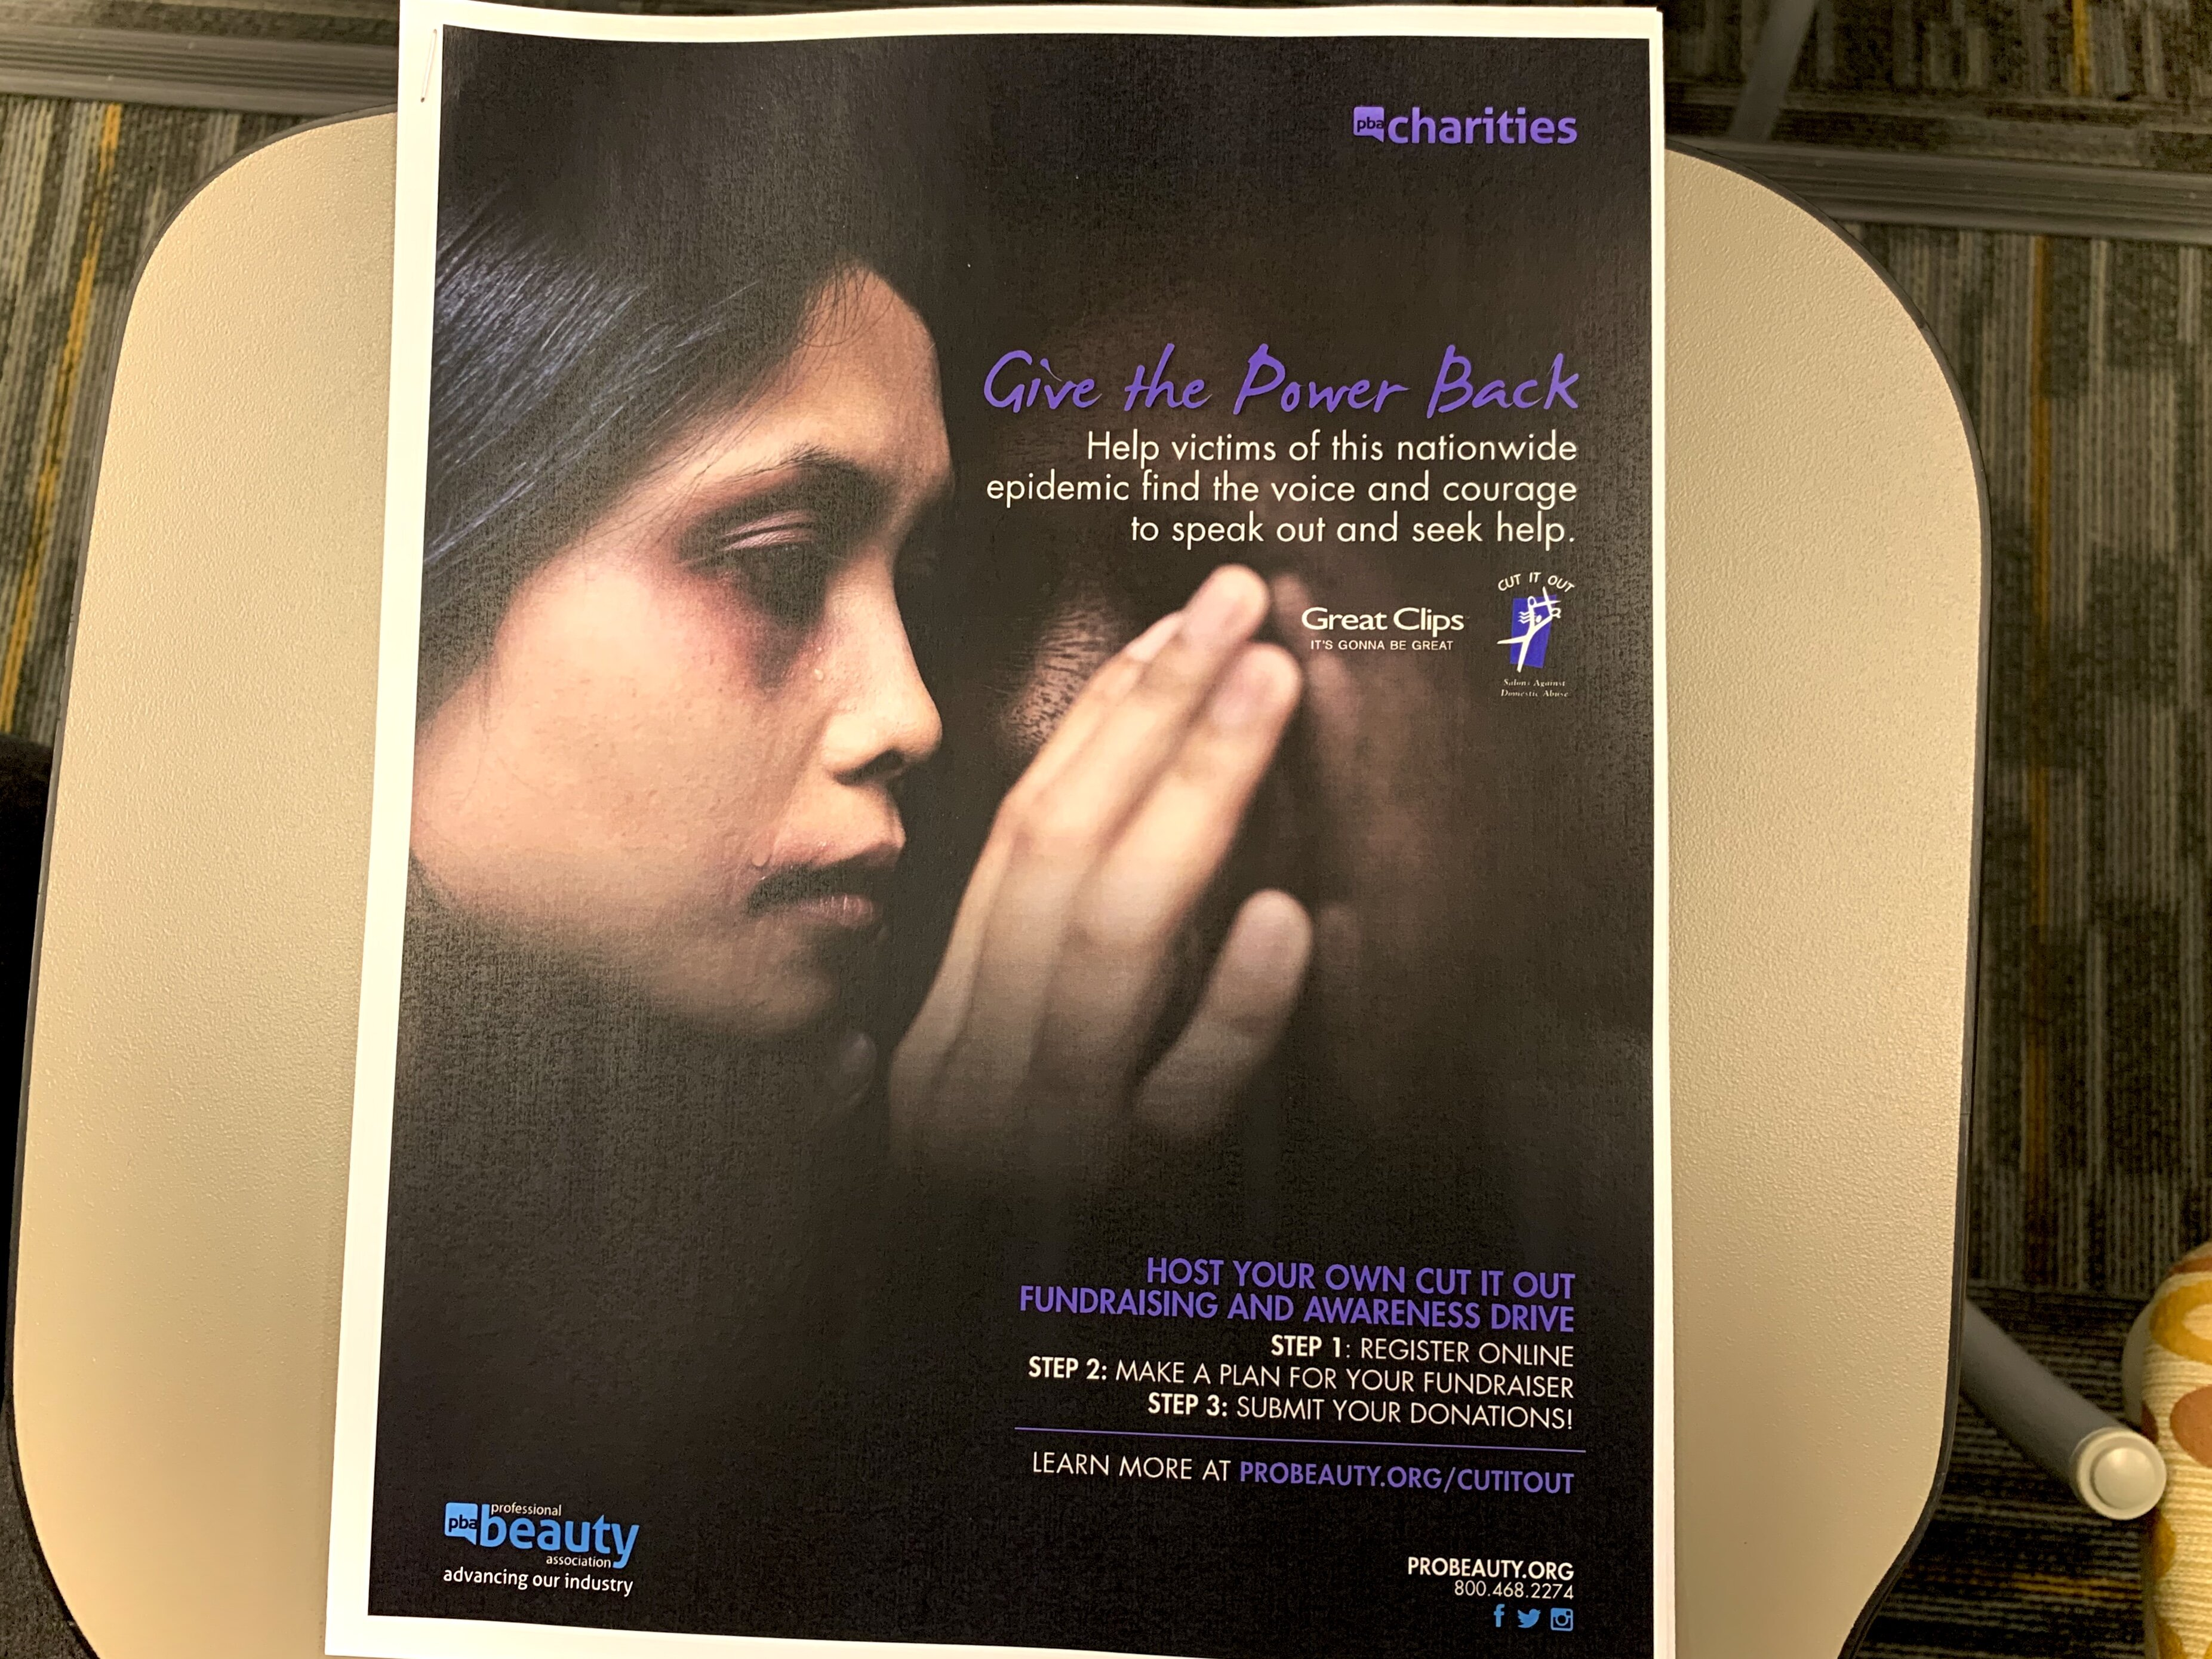 The Shelby County Crime Victims and Rape Crisis Center is using training materials from the national CUT IT OUT program to train Mid-South beauty industry professionals to identify signs of domestic violence among clients. (Memphis CUT IT OUT).